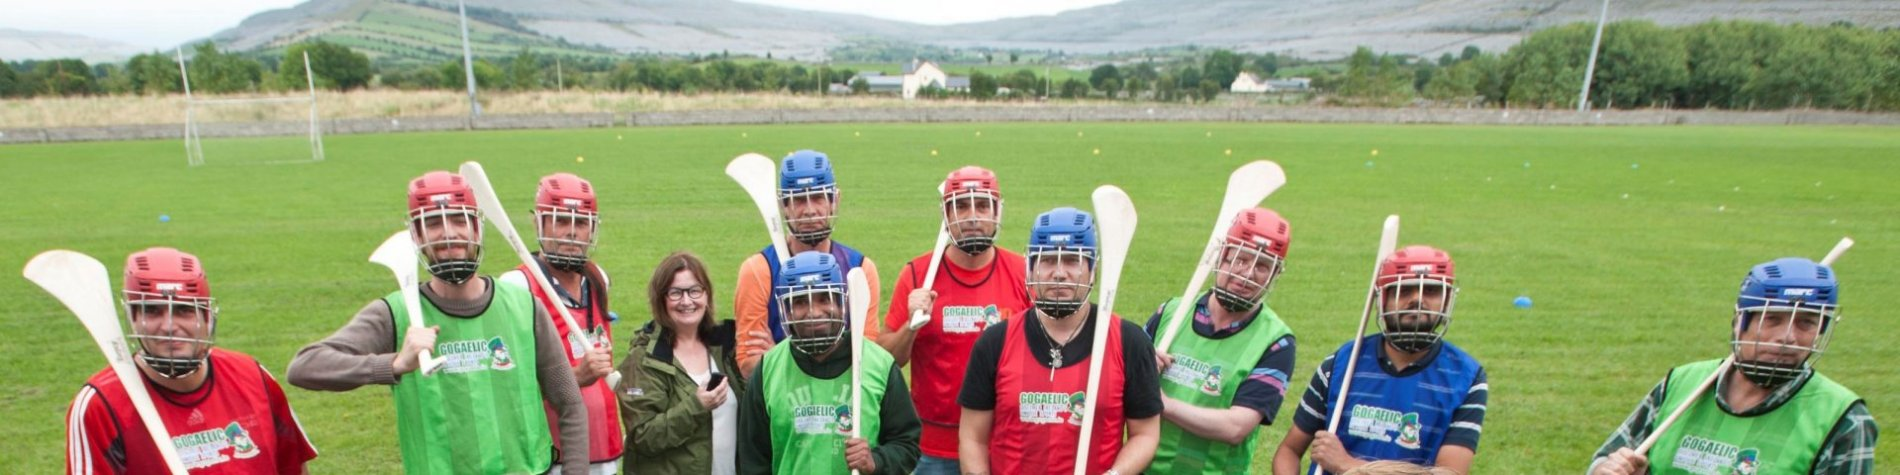 Group playing Irish sports - Go Gaelic Galway